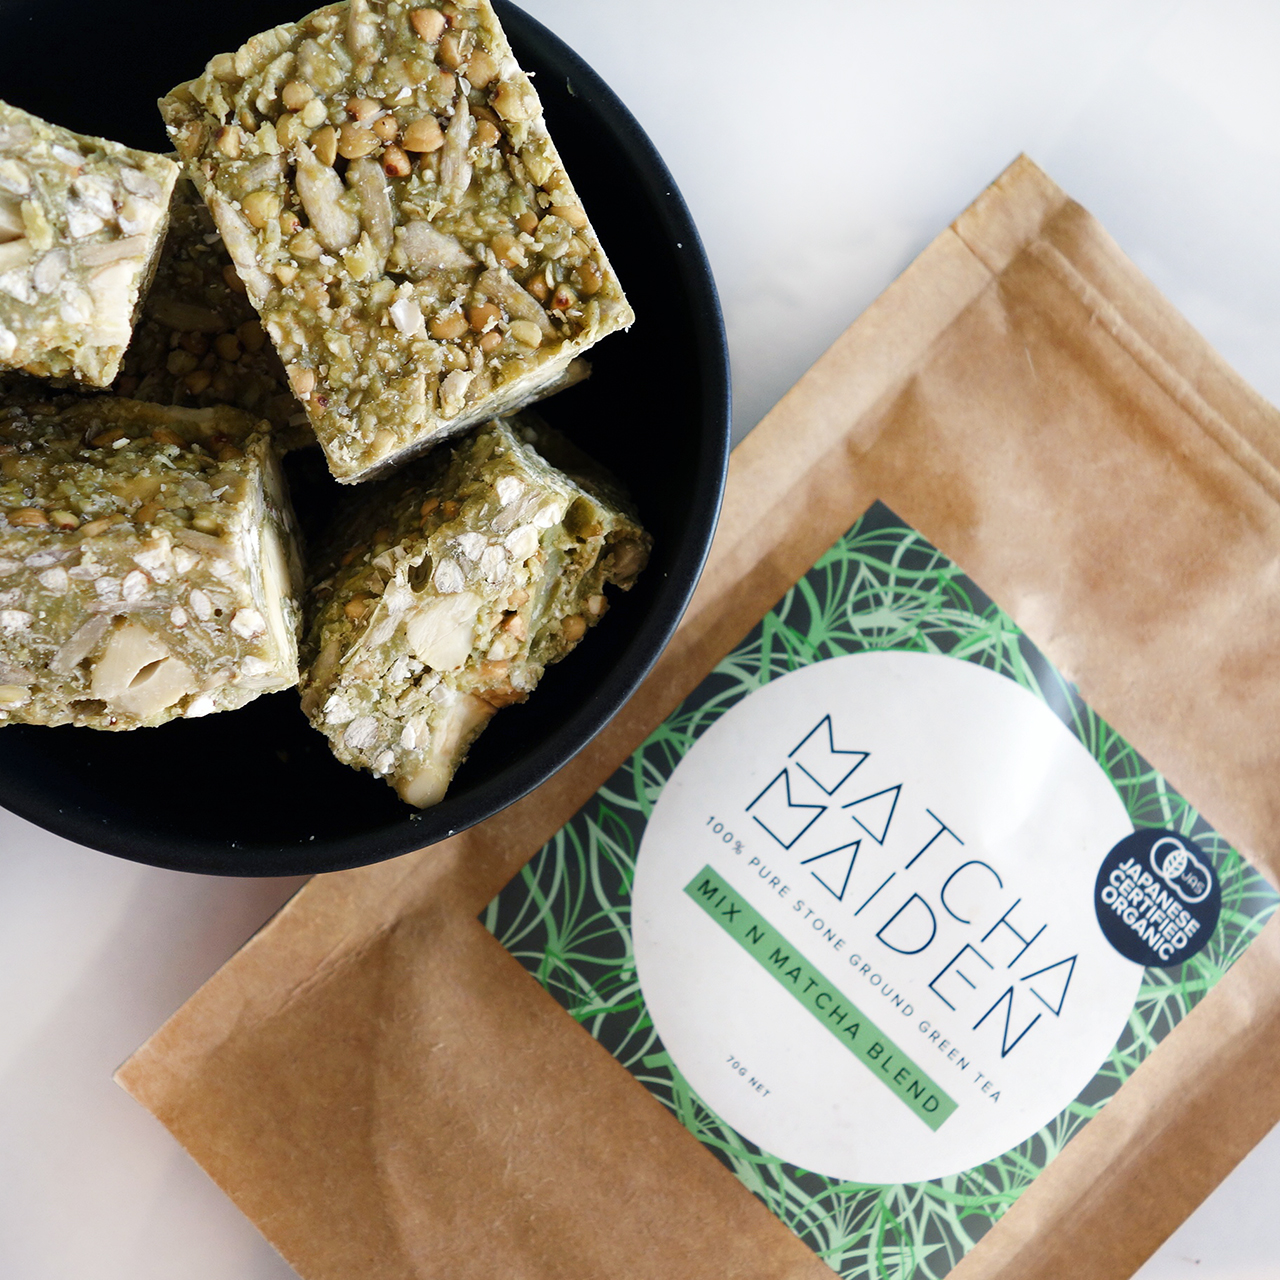 matcha maiden raw white chocolate cashew nut and seed bars